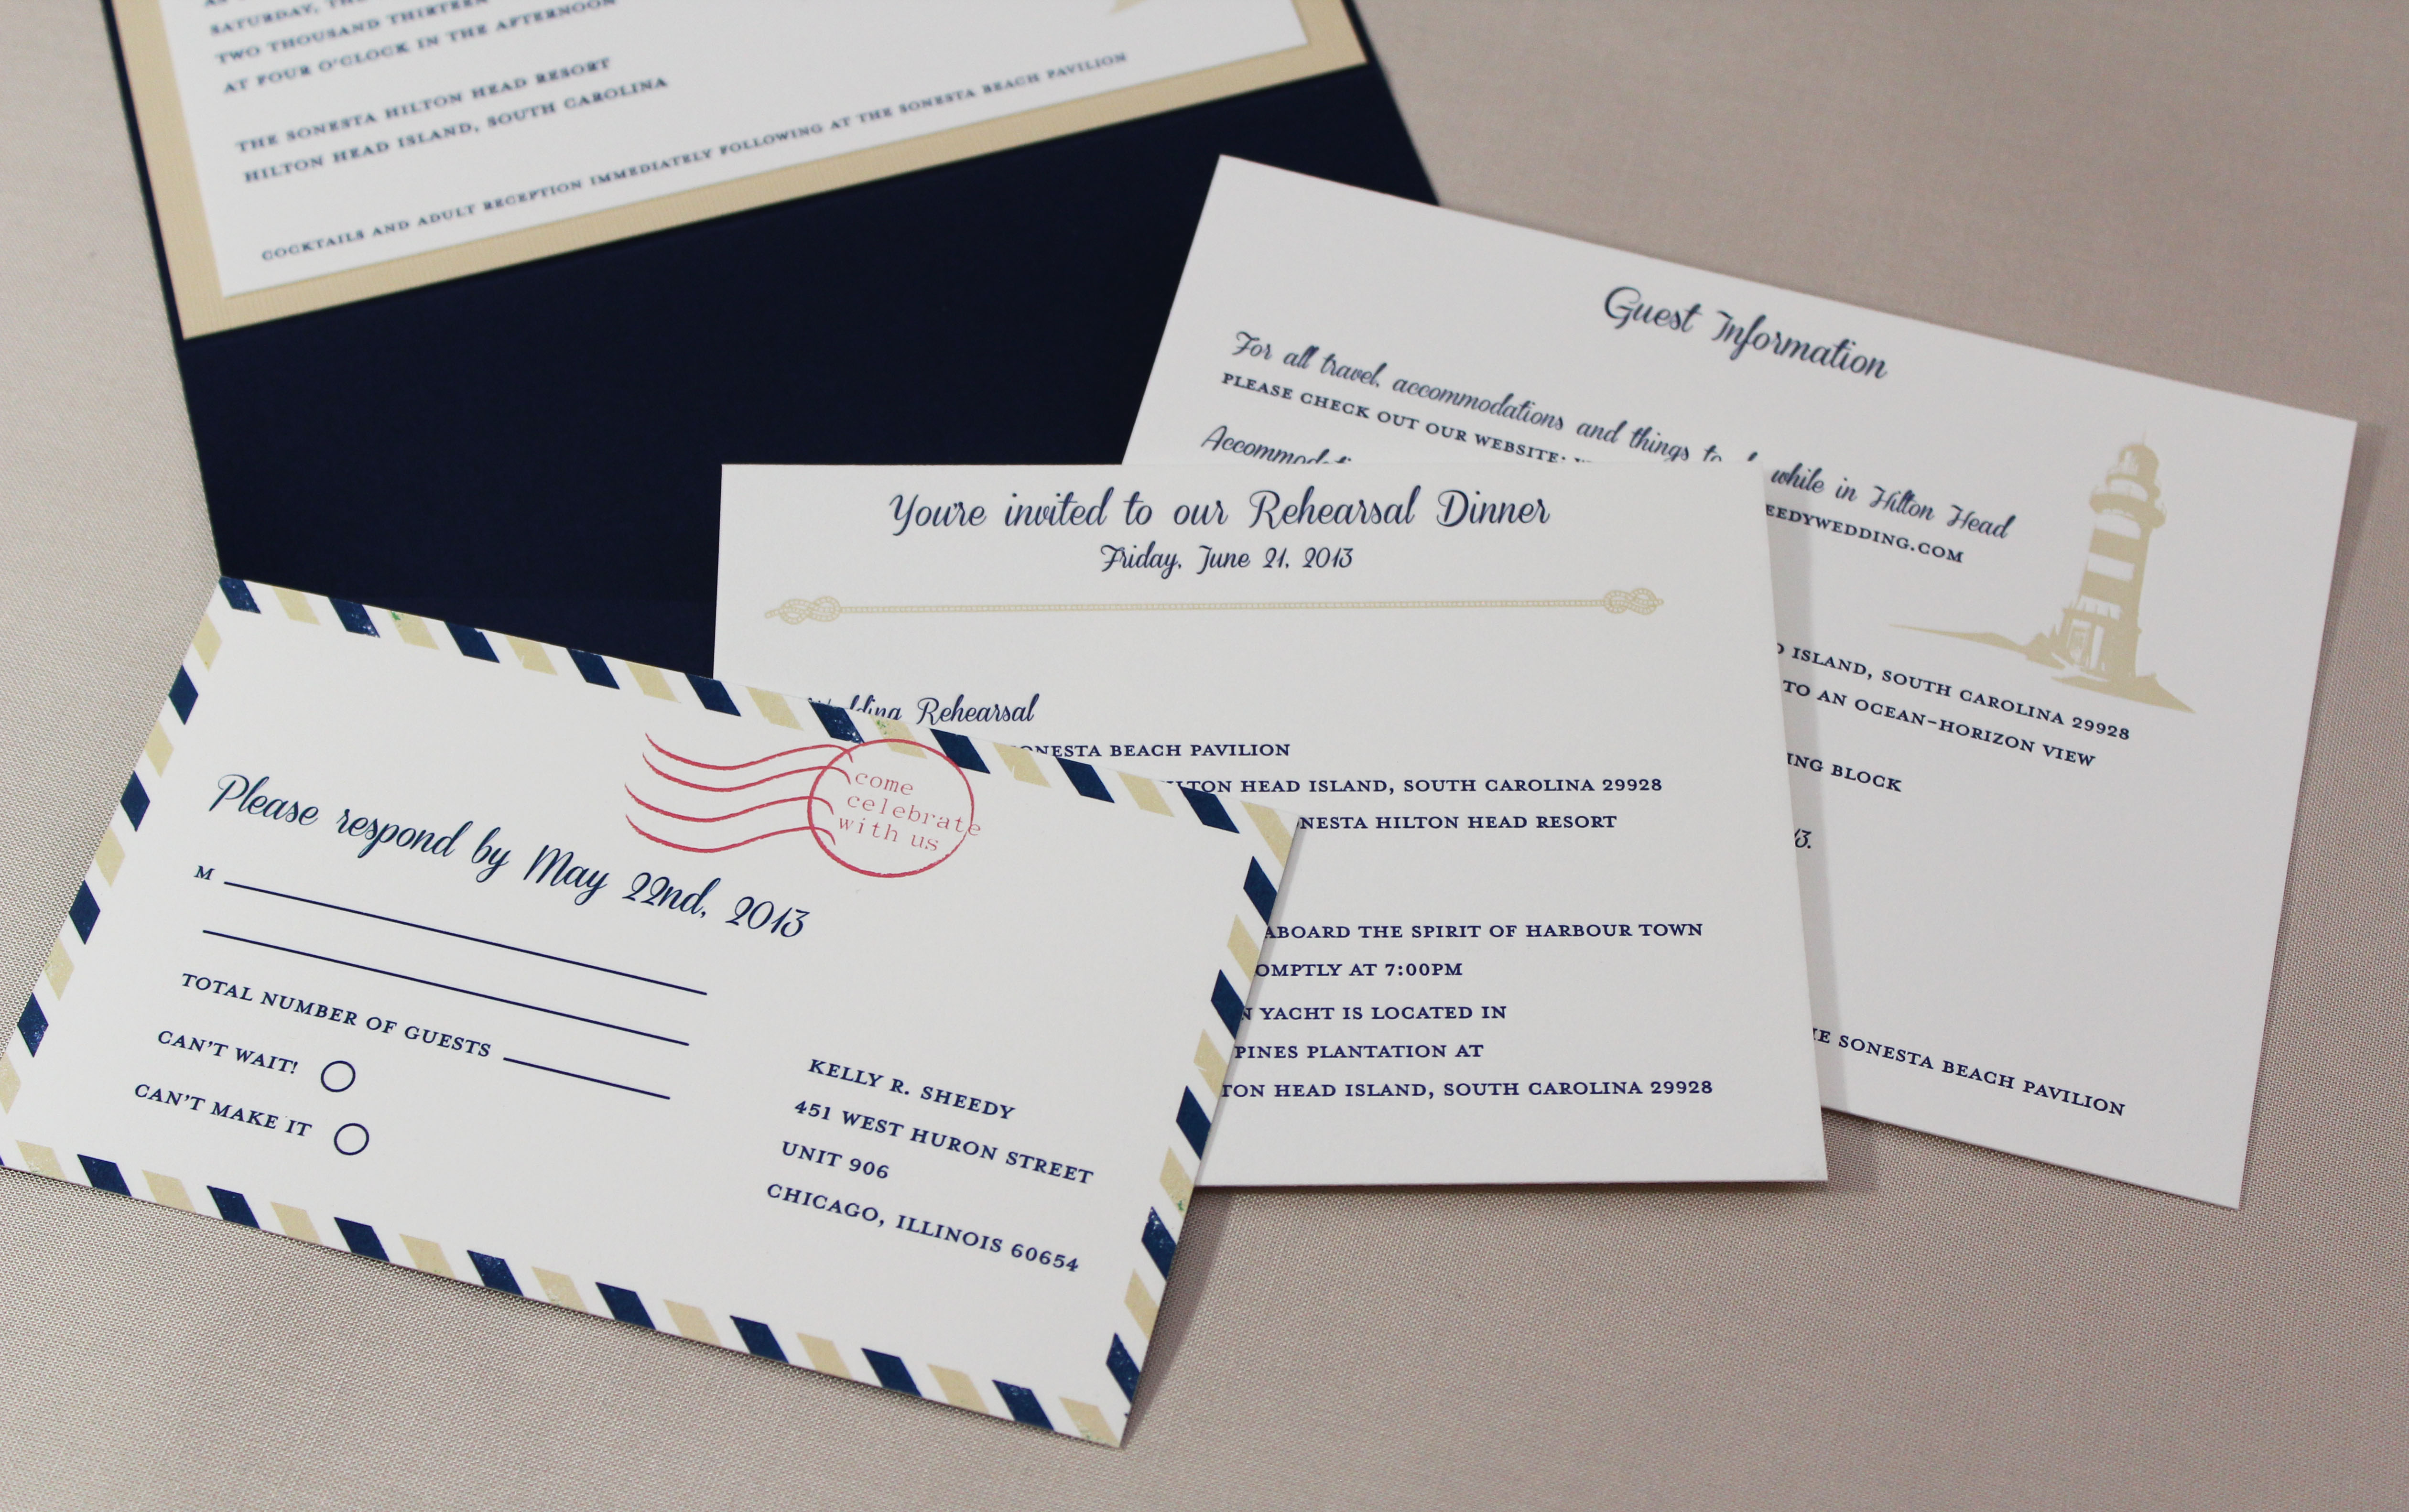 Hilton Head wedding invitation